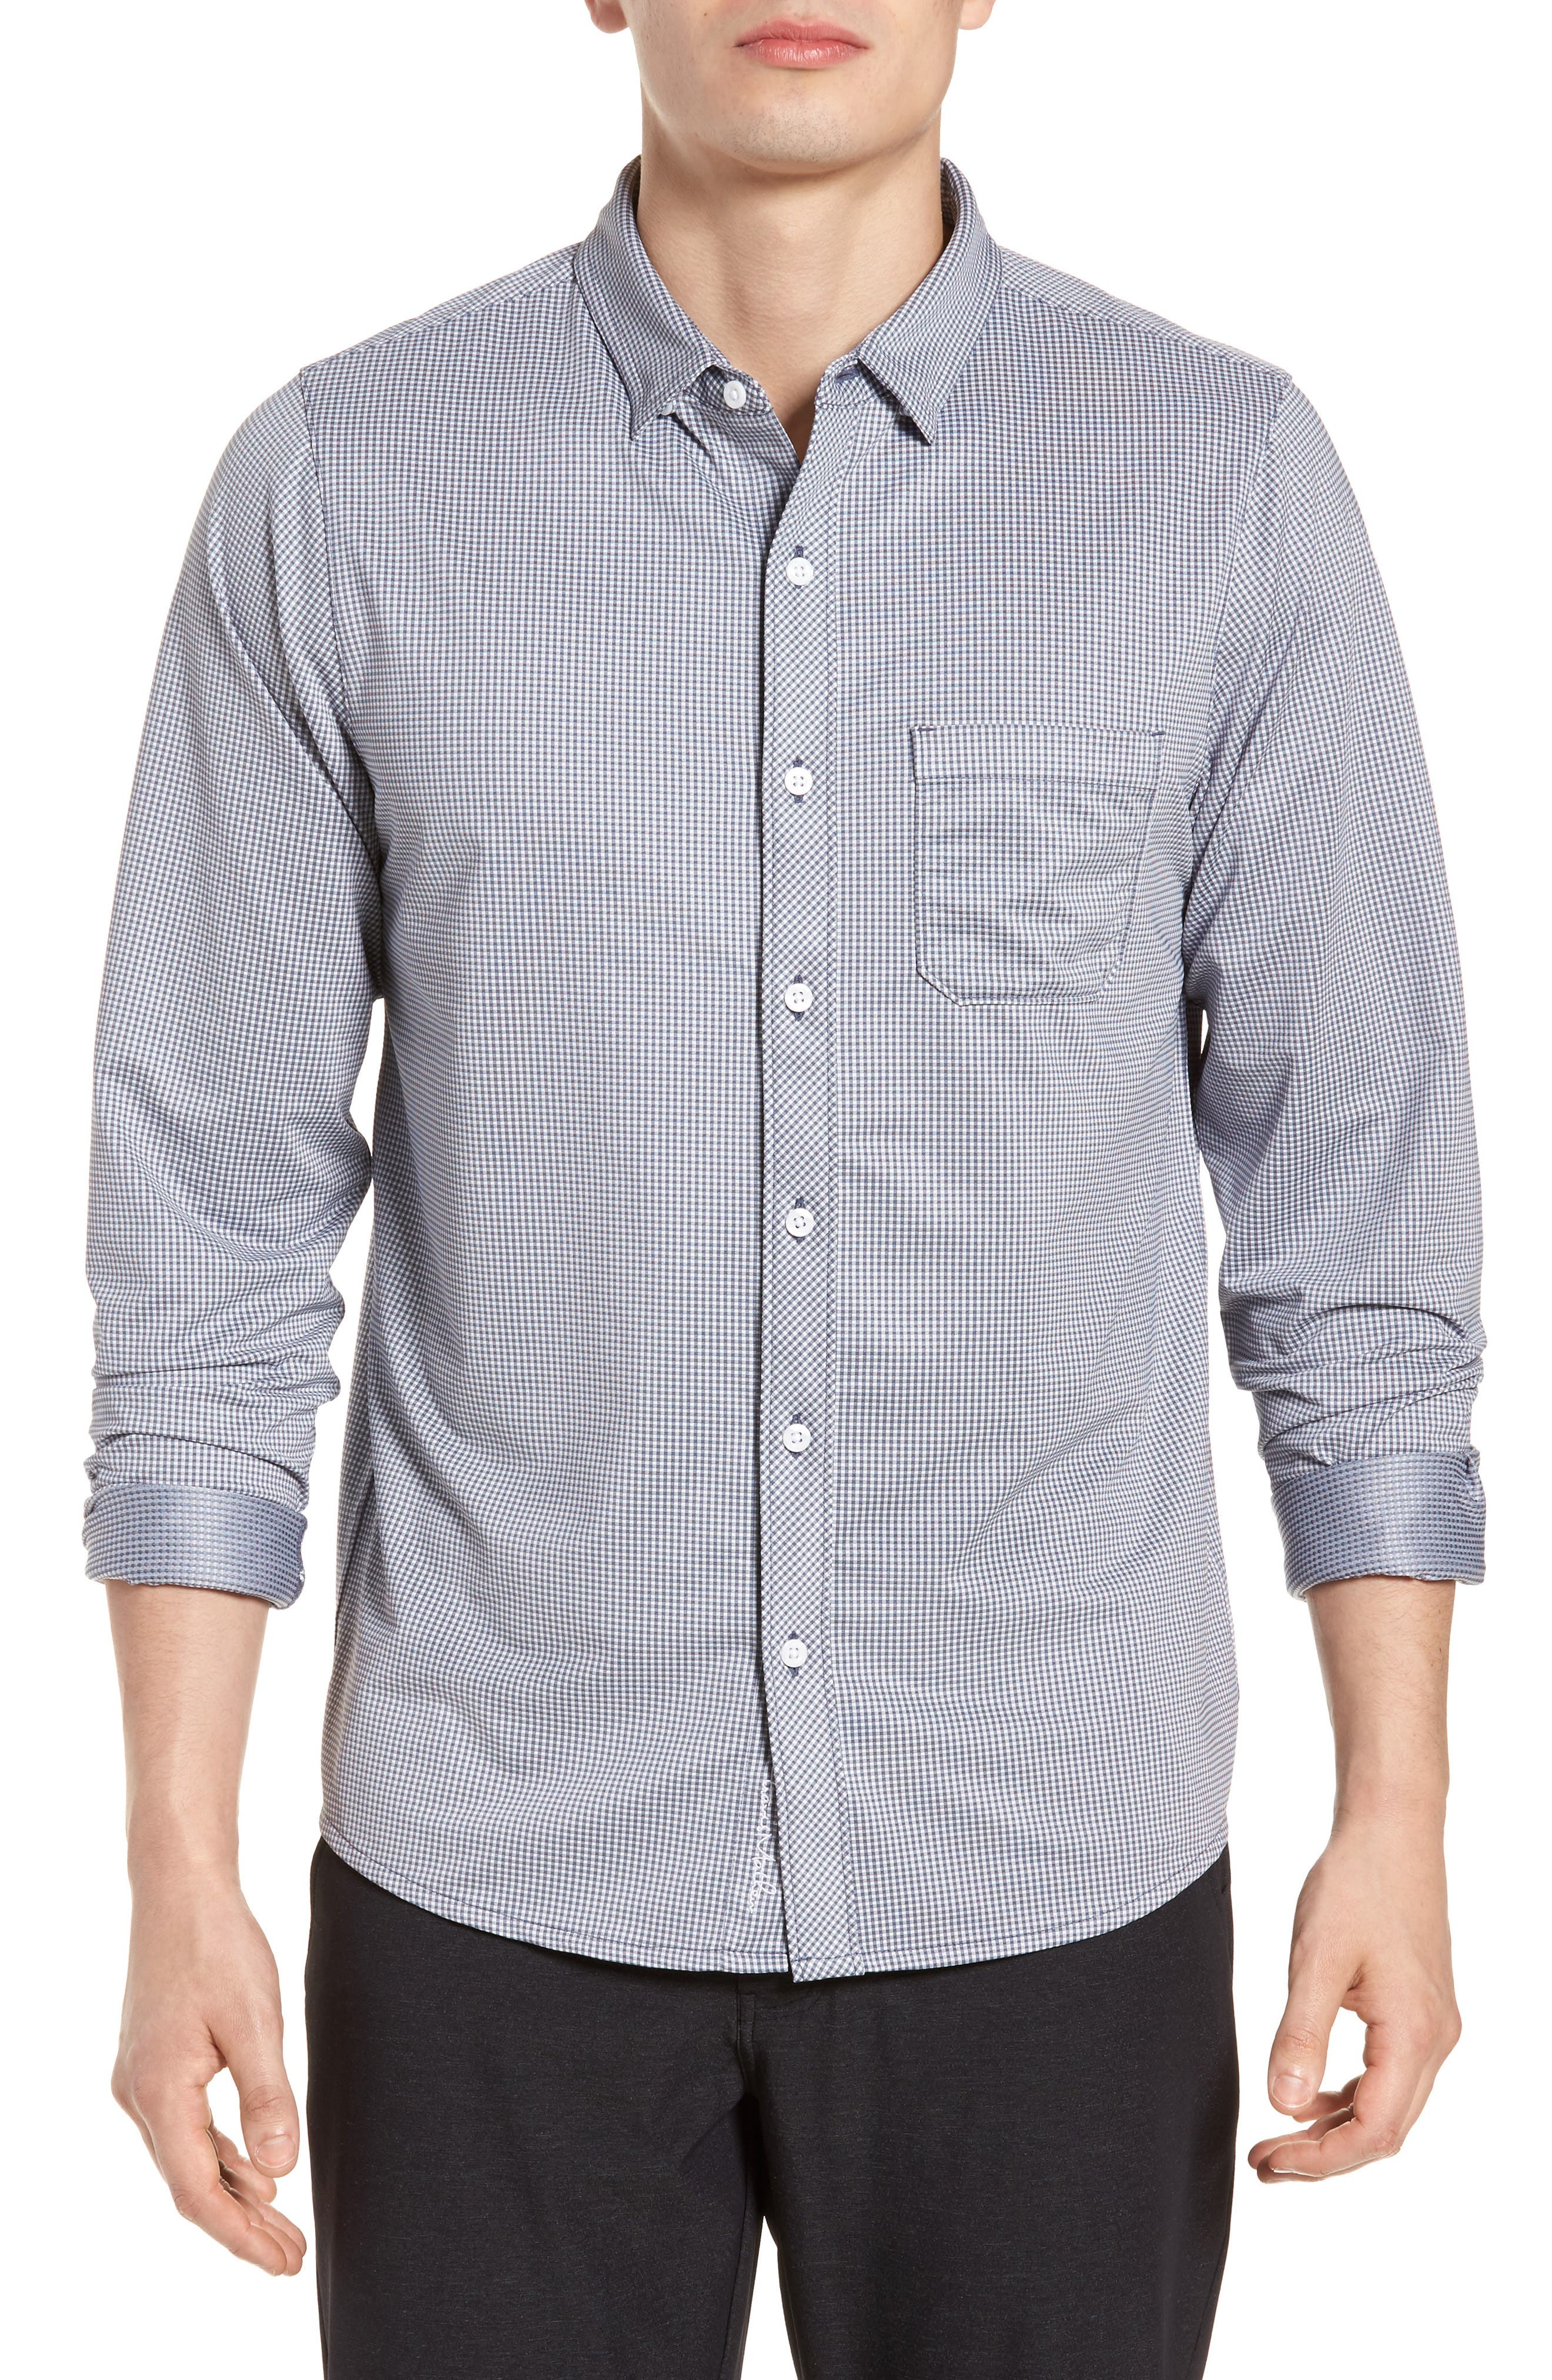 Couig Gingham Sport Shirt,                             Main thumbnail 1, color,                             White/ Grisaille